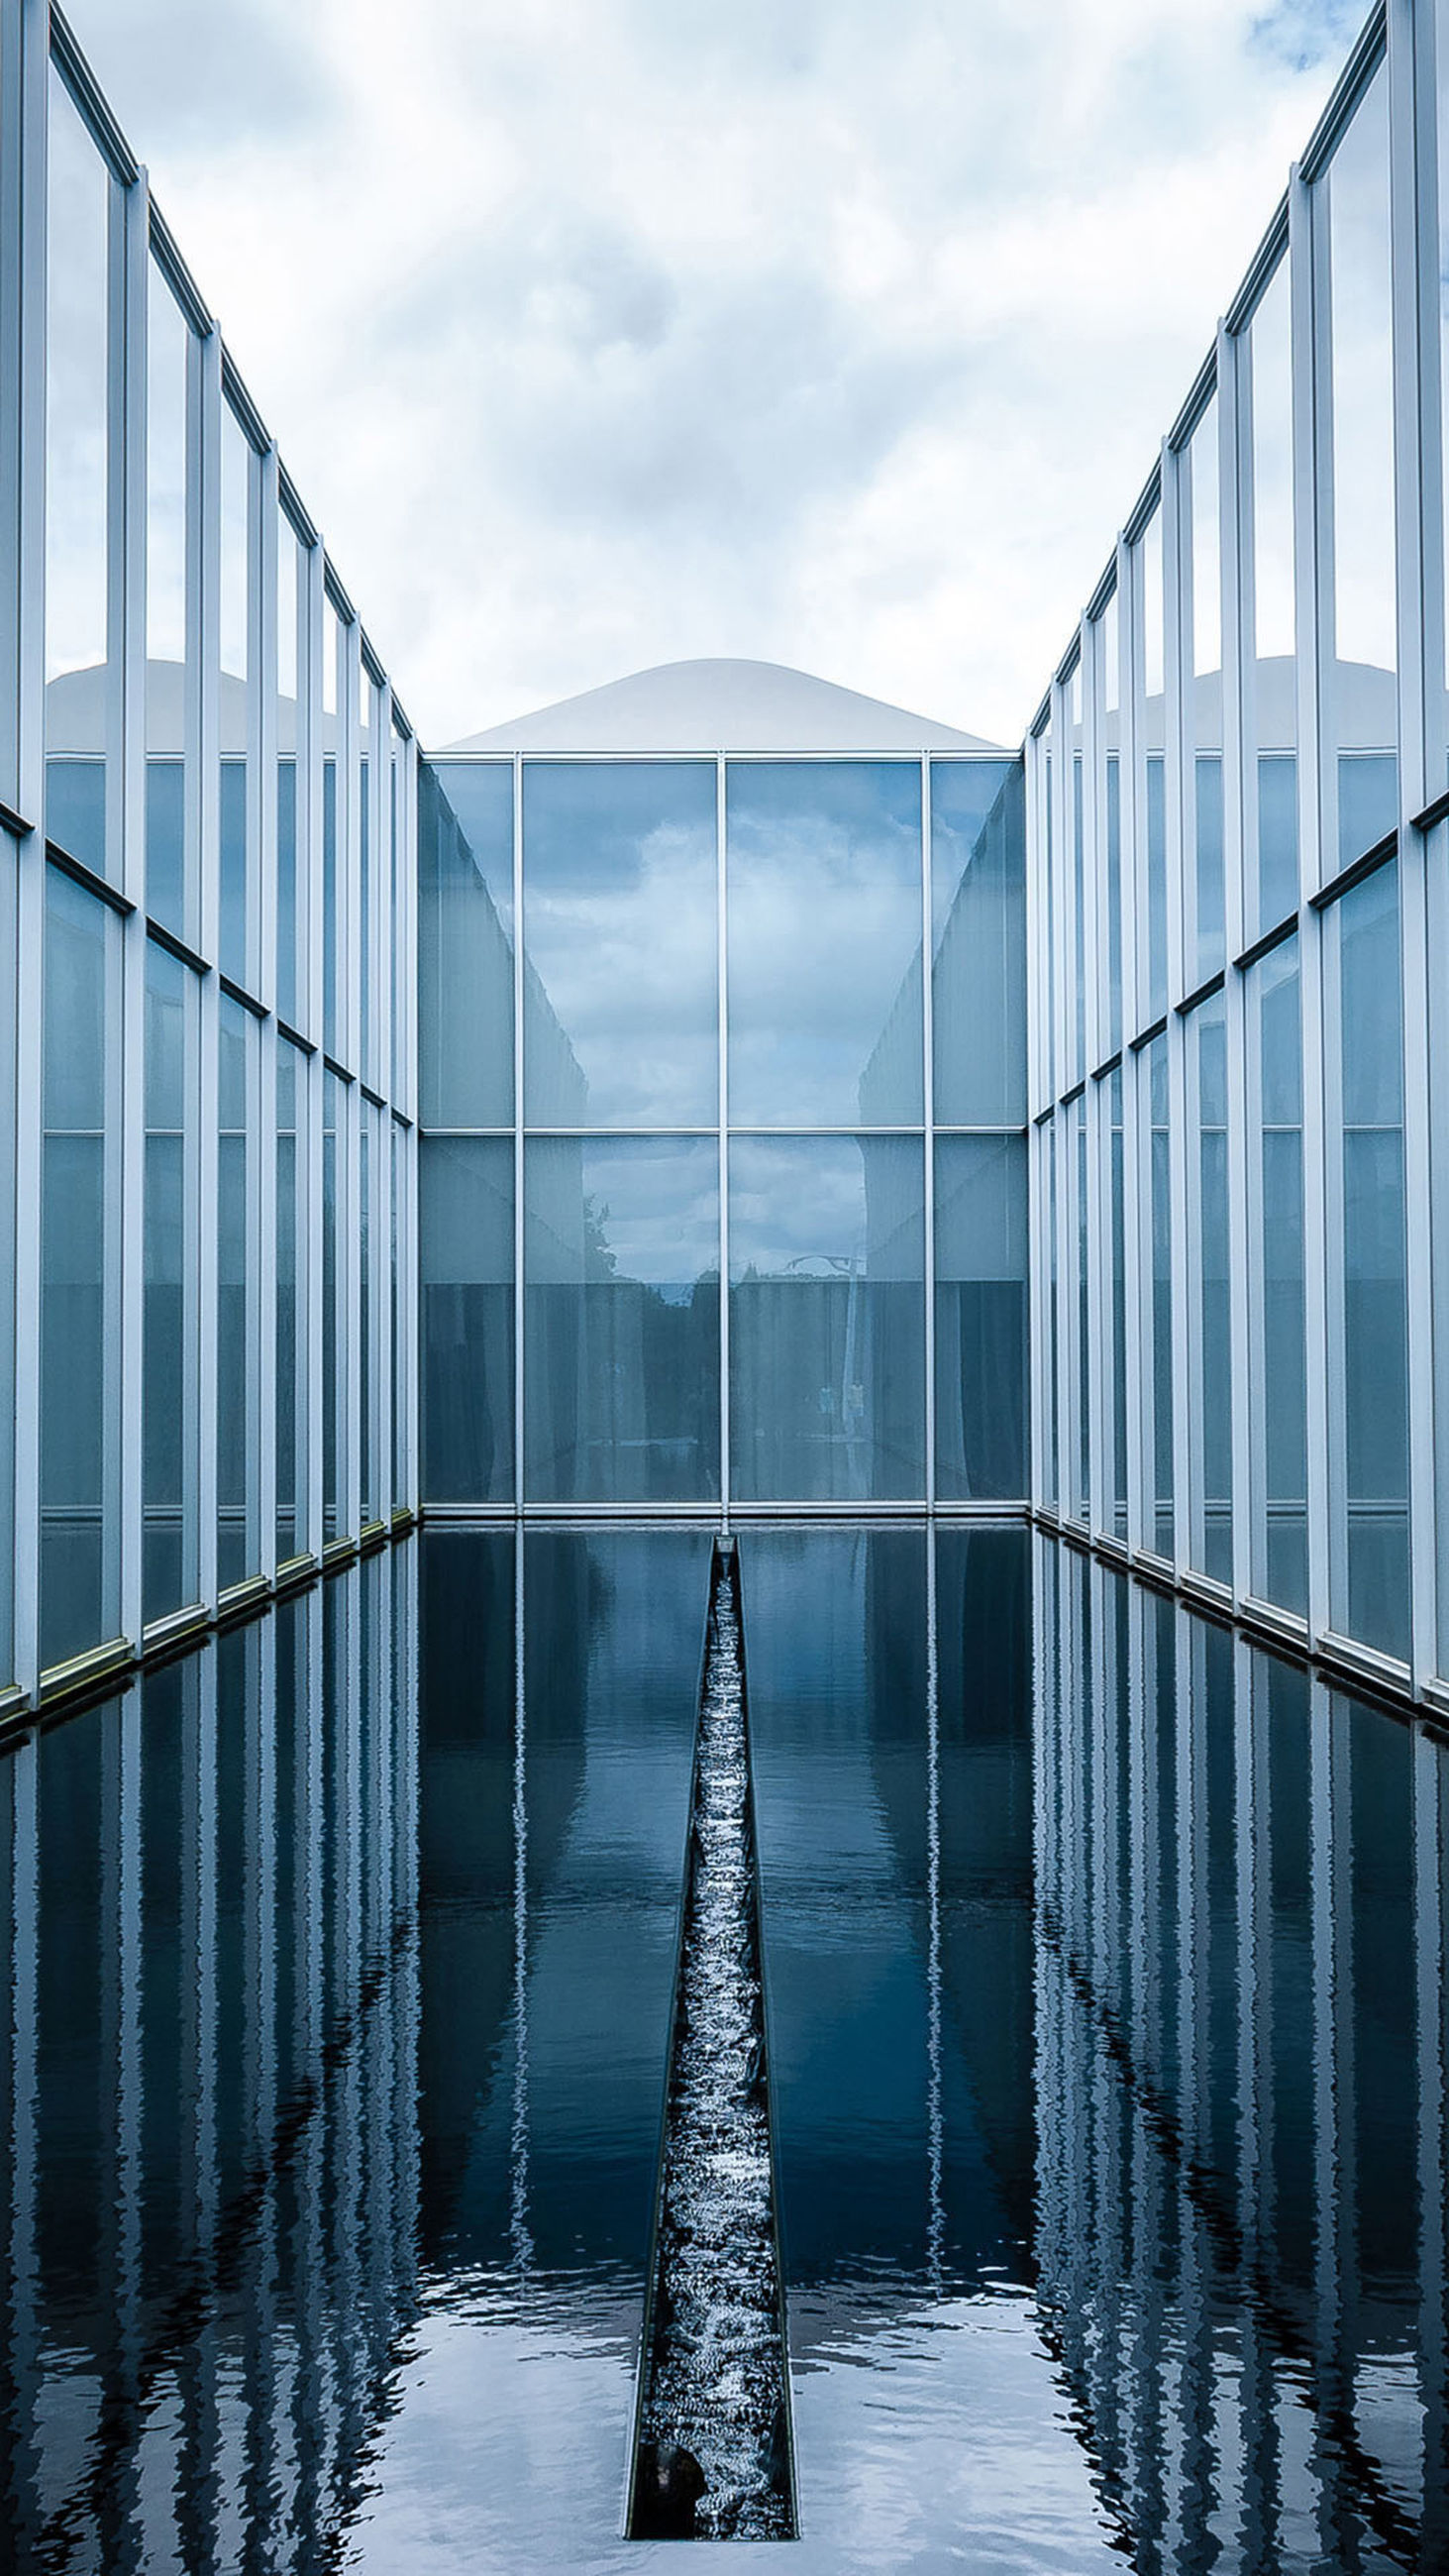 water, architecture, no people, cloud - sky, day, nature, sky, indoors